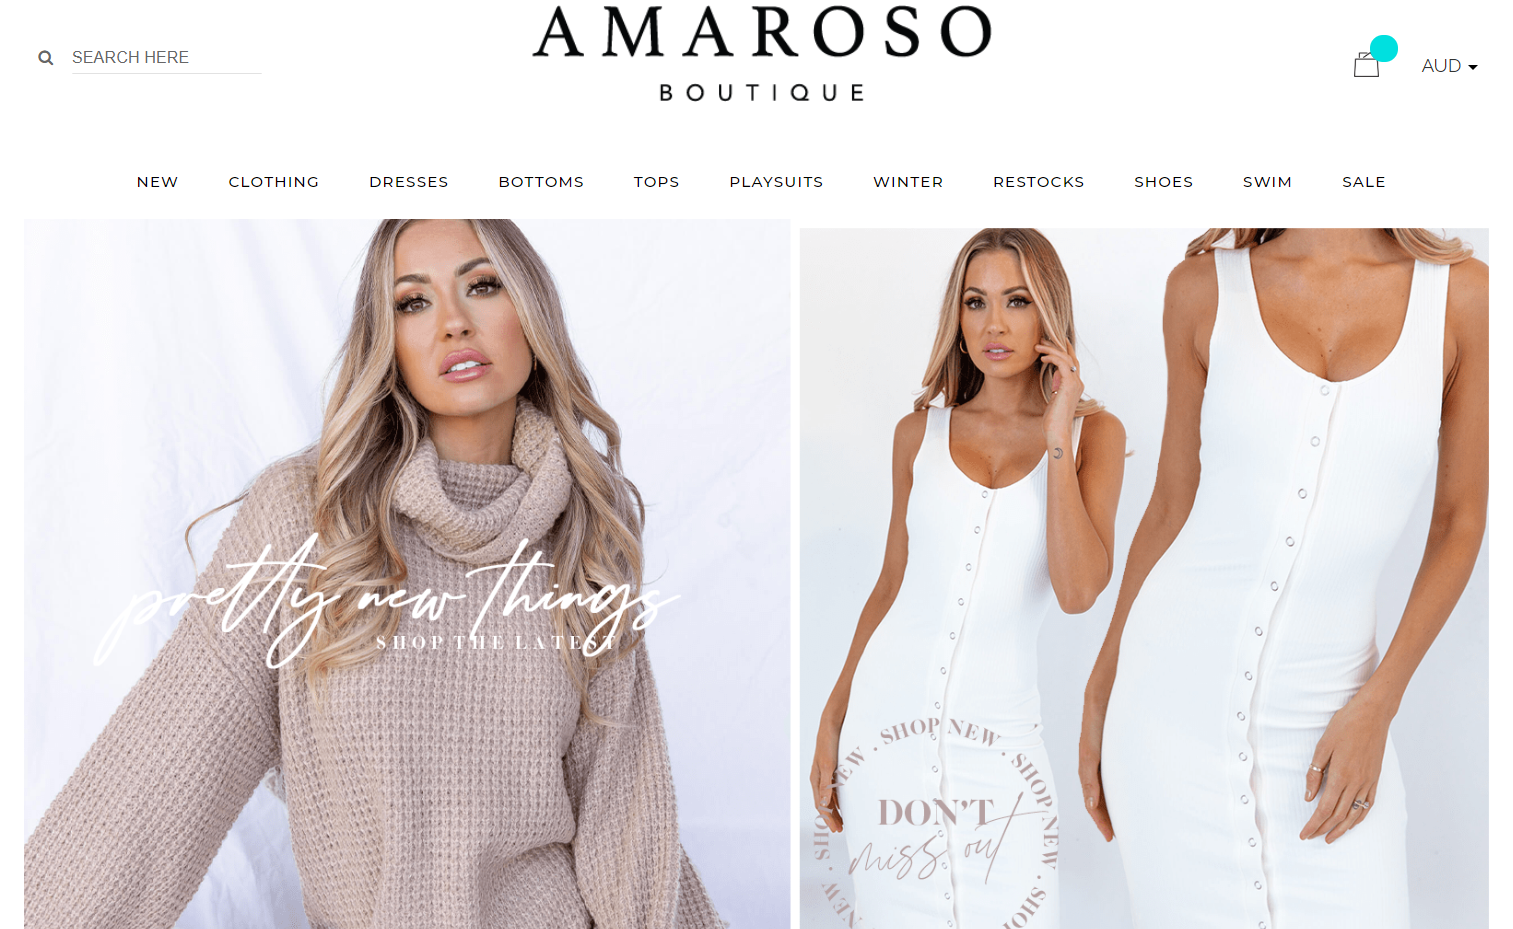 Amaroso Boutique Promo codes at HotOz